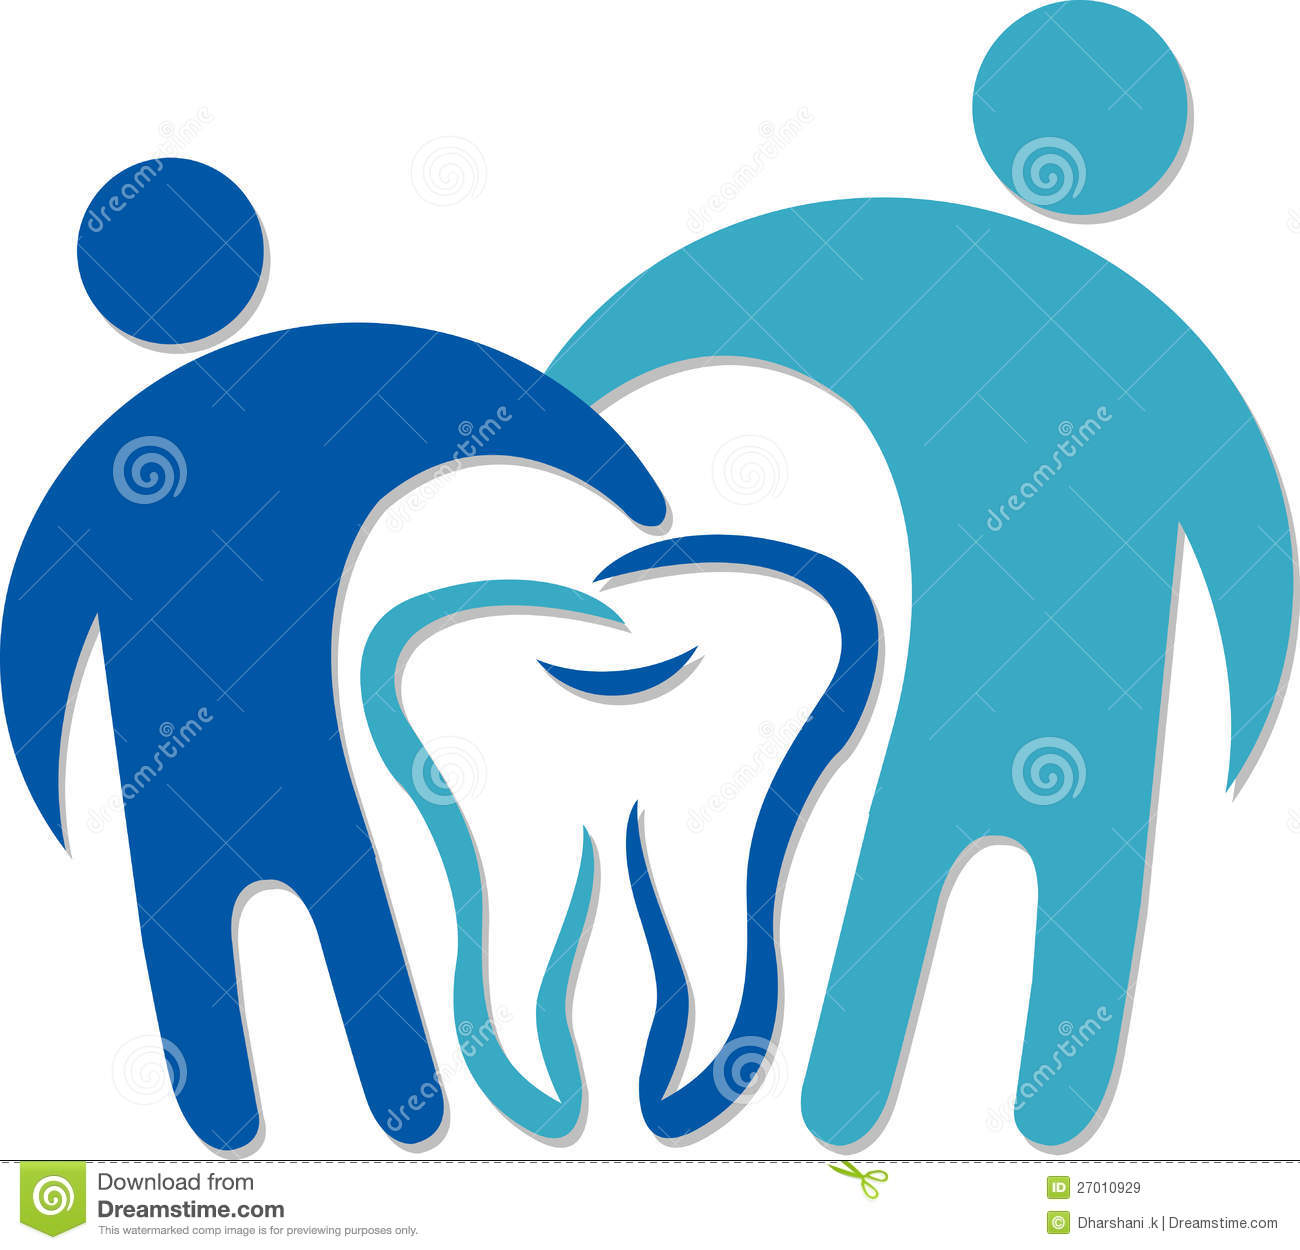 Dental Couple Logo Royalty Free Stock Images - Image: 27010929